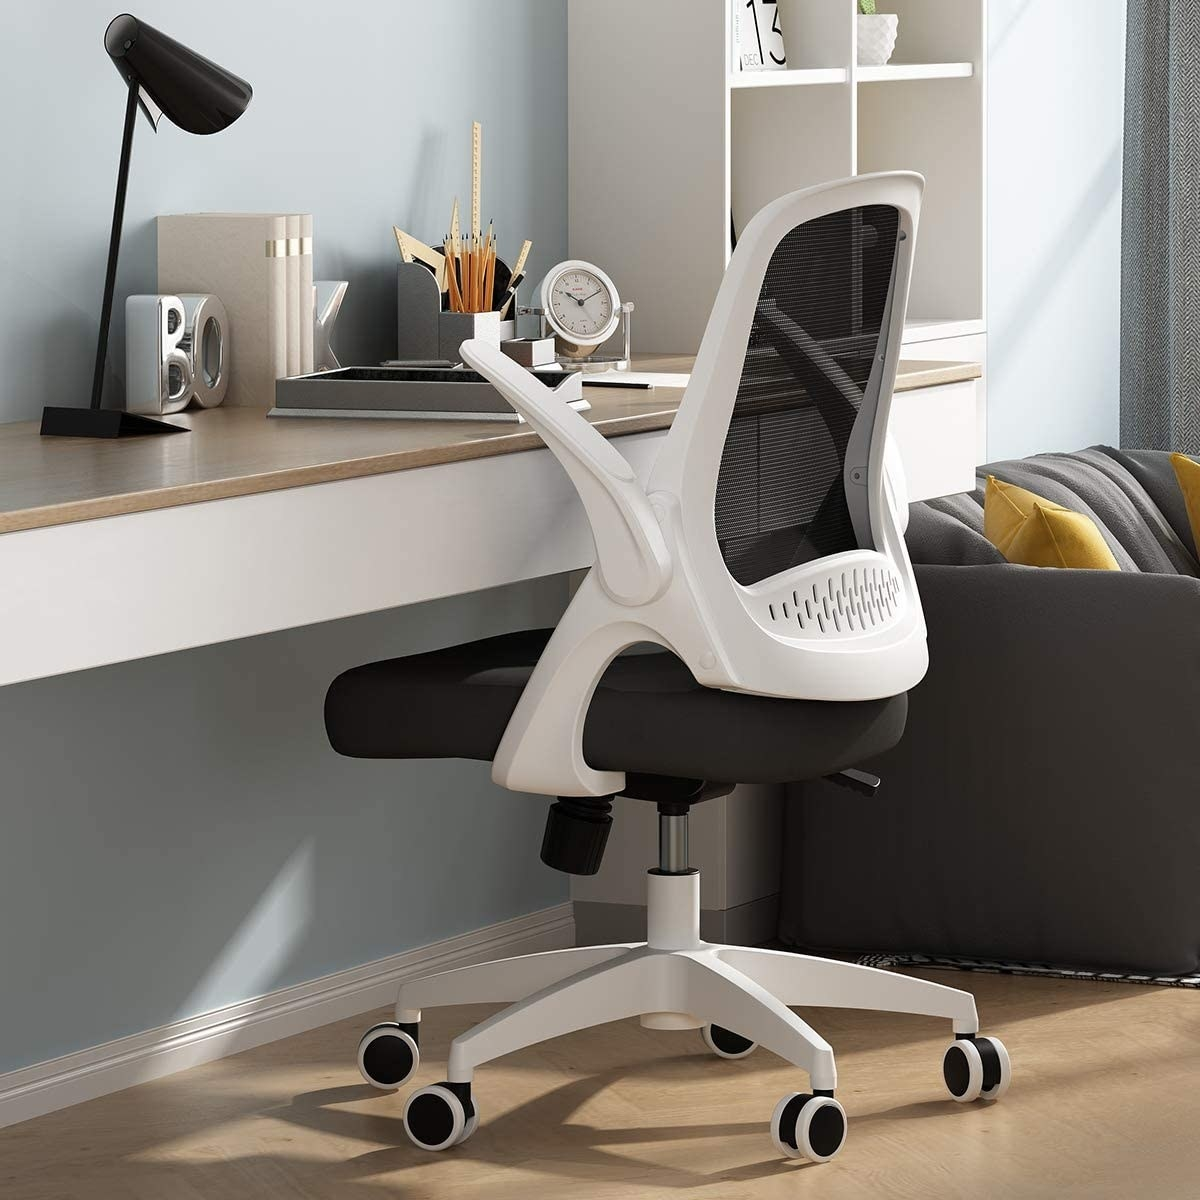 Swivel chair with padded seating and lumbar support